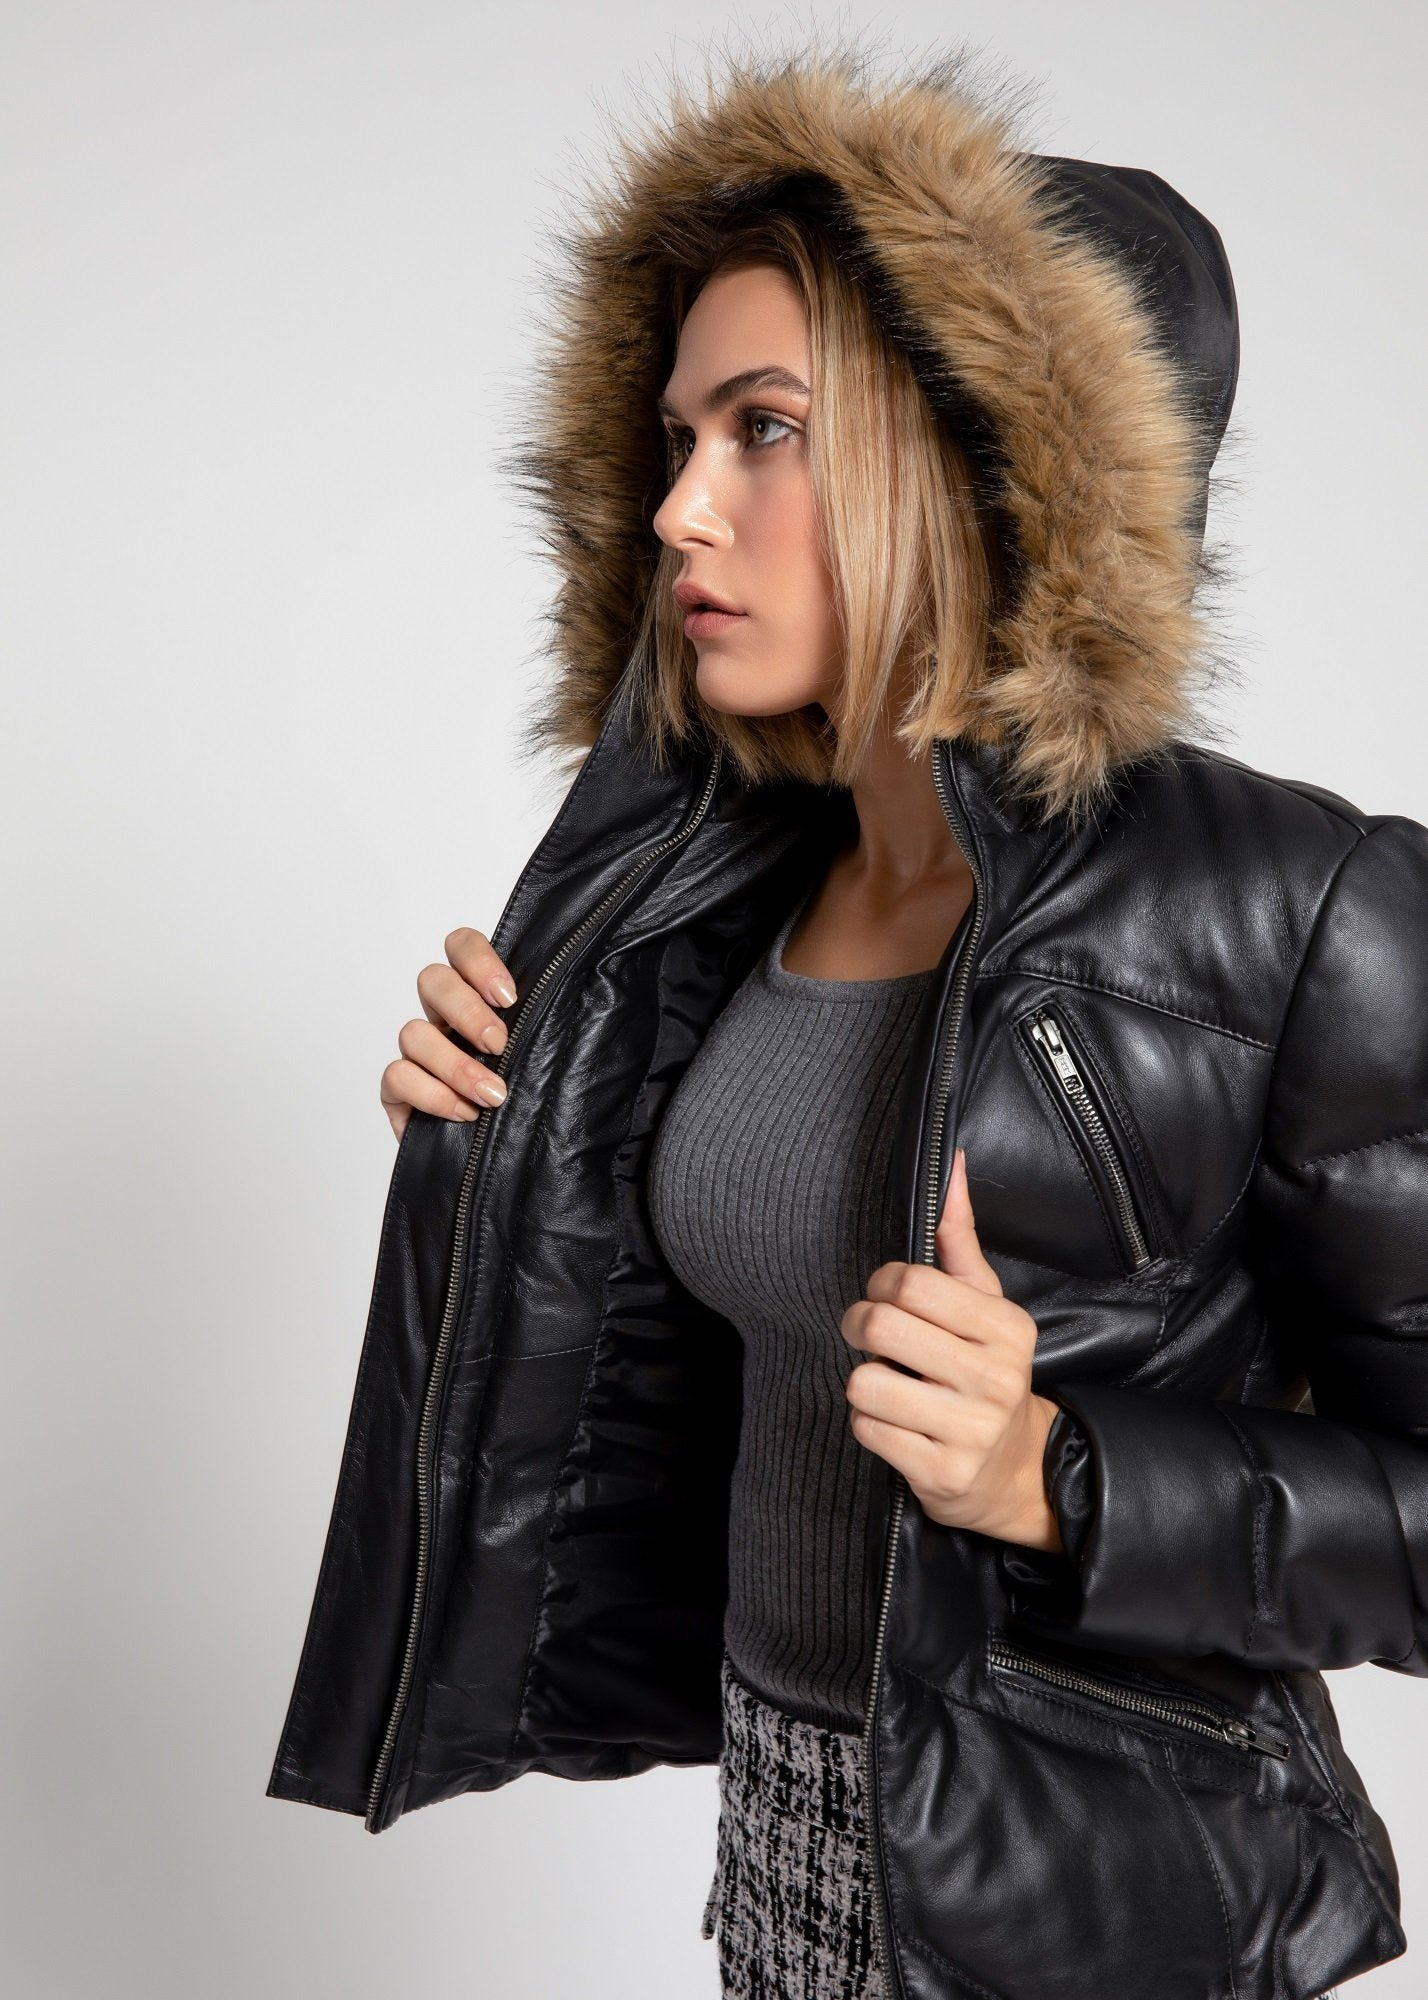 Womens Leather Jacket - Women's Joselyn Black Puffer Winter Down Leather Jacket With Fur